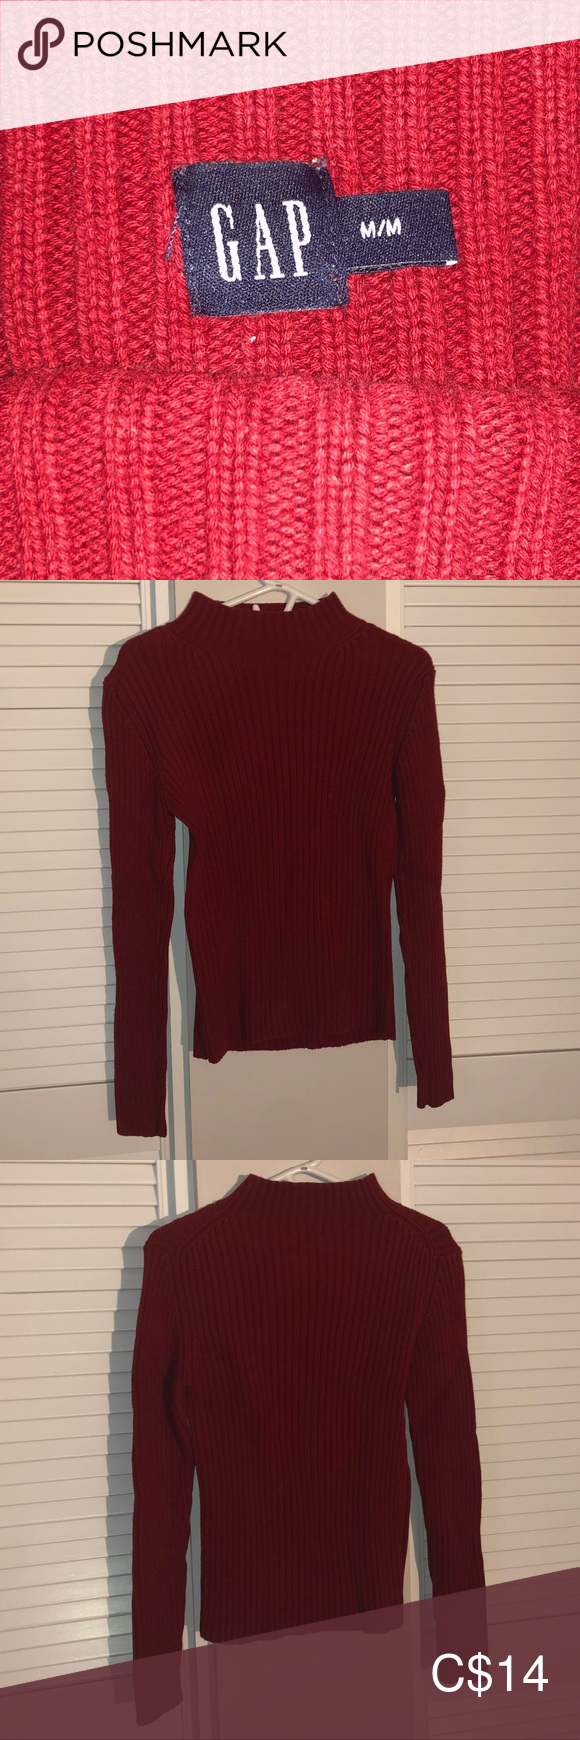 knitted long sleeve sweater in 2020 Long sleeve sweater